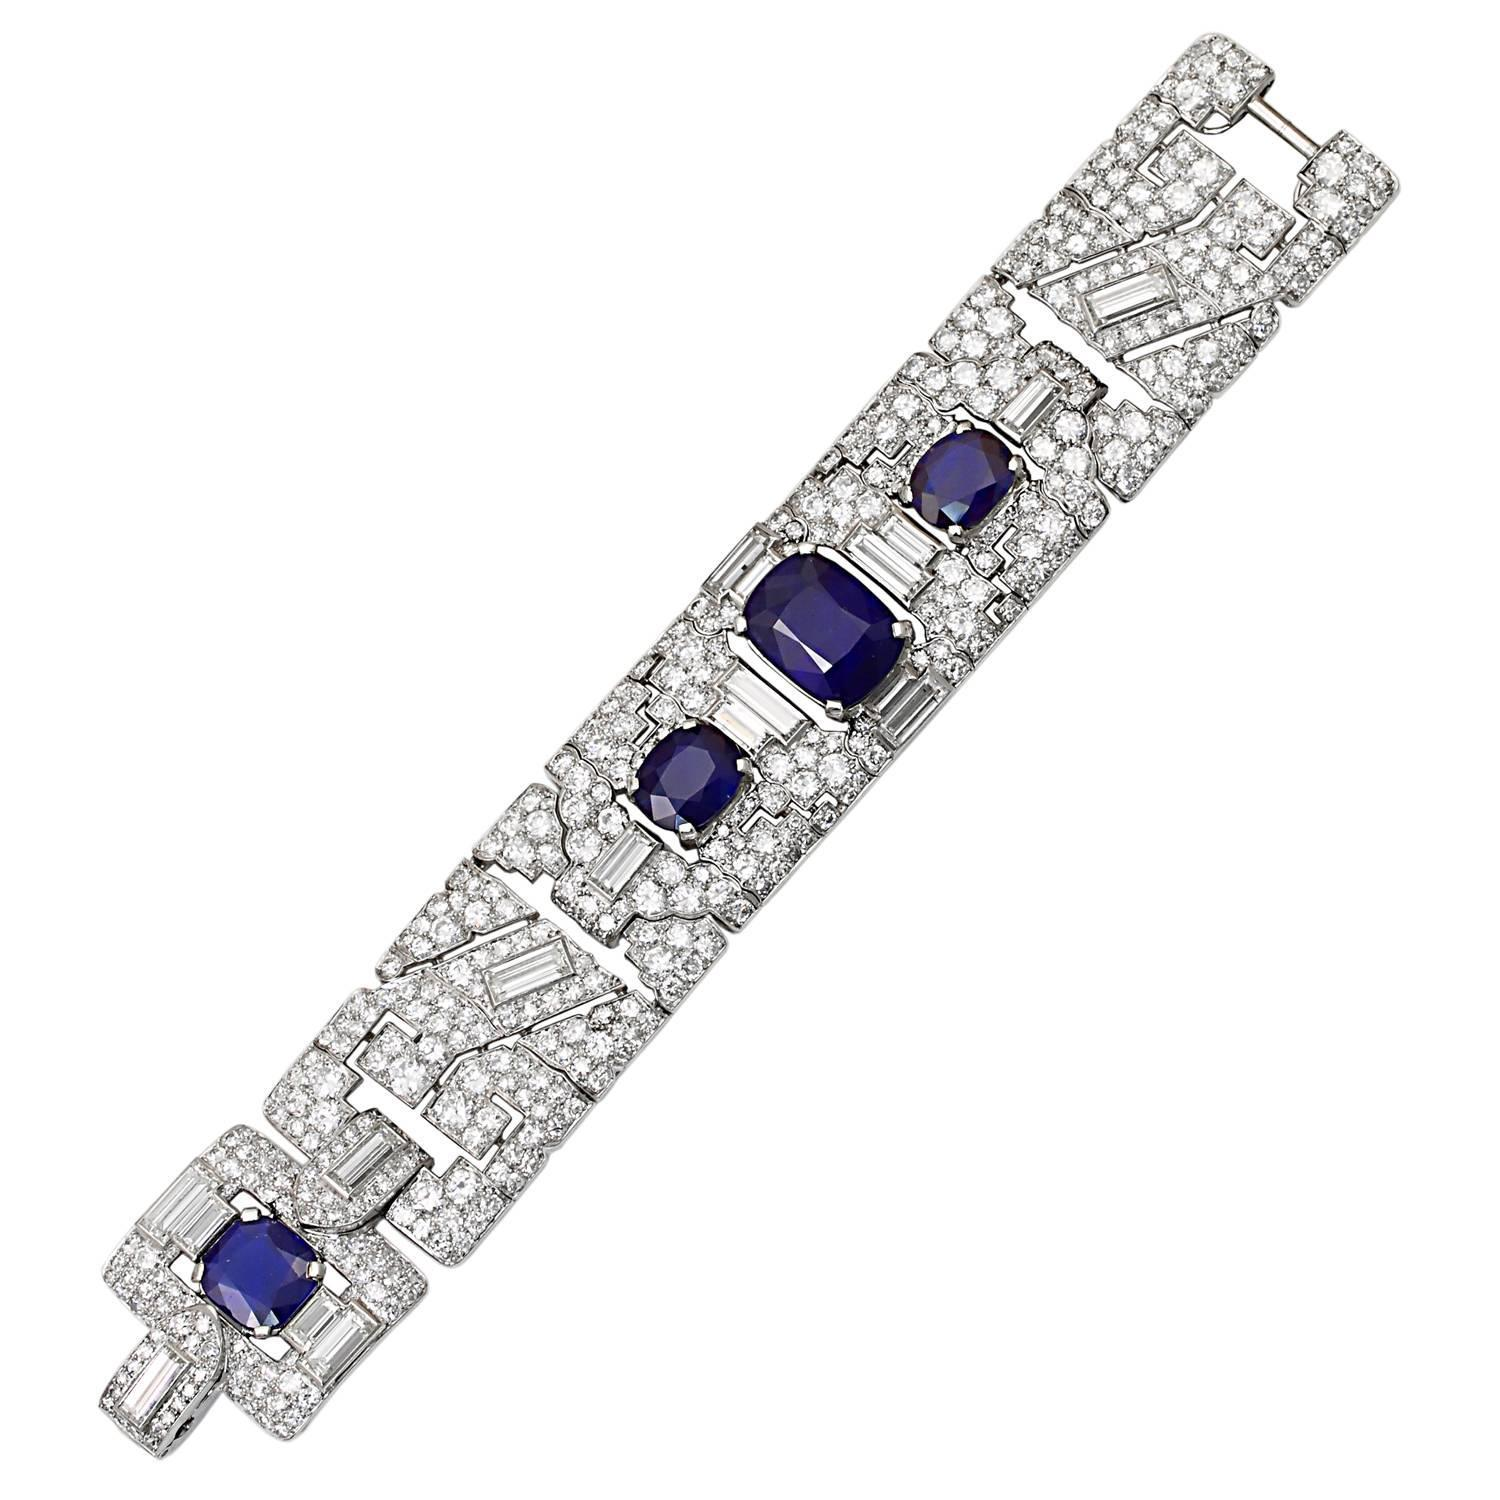 jewelers diamond of products cj bracelet charles sapphire yellow gold princess